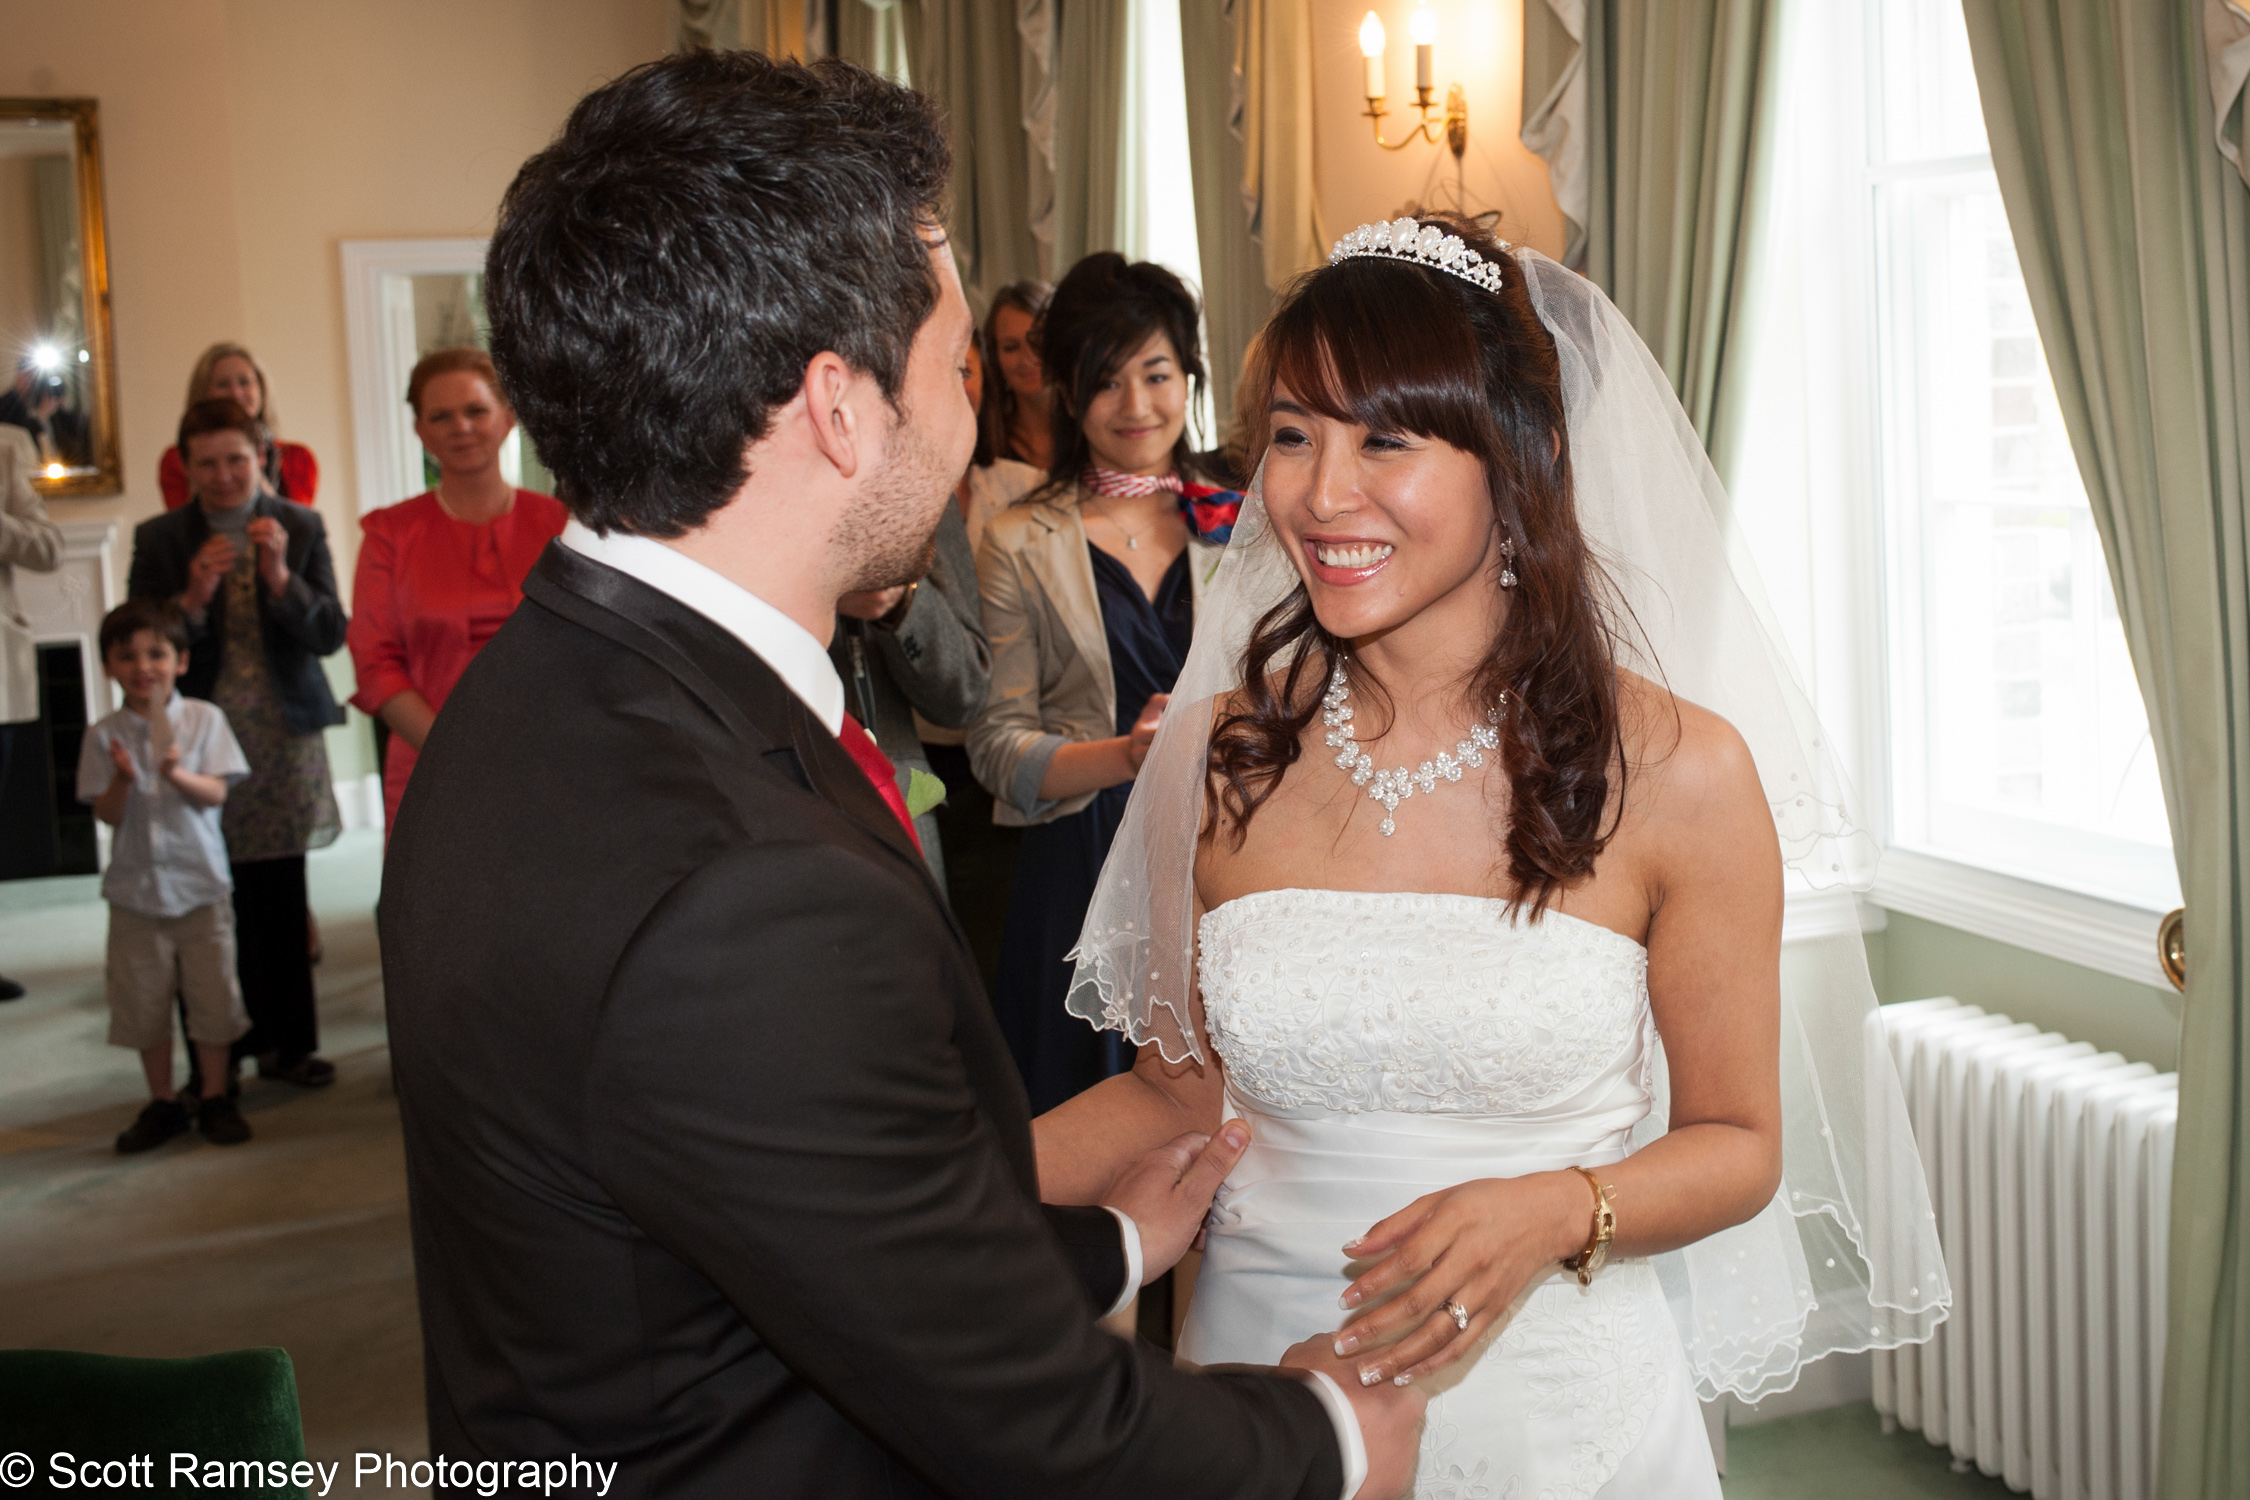 Portsmouth Registry Office Wedding Couple 040513-20